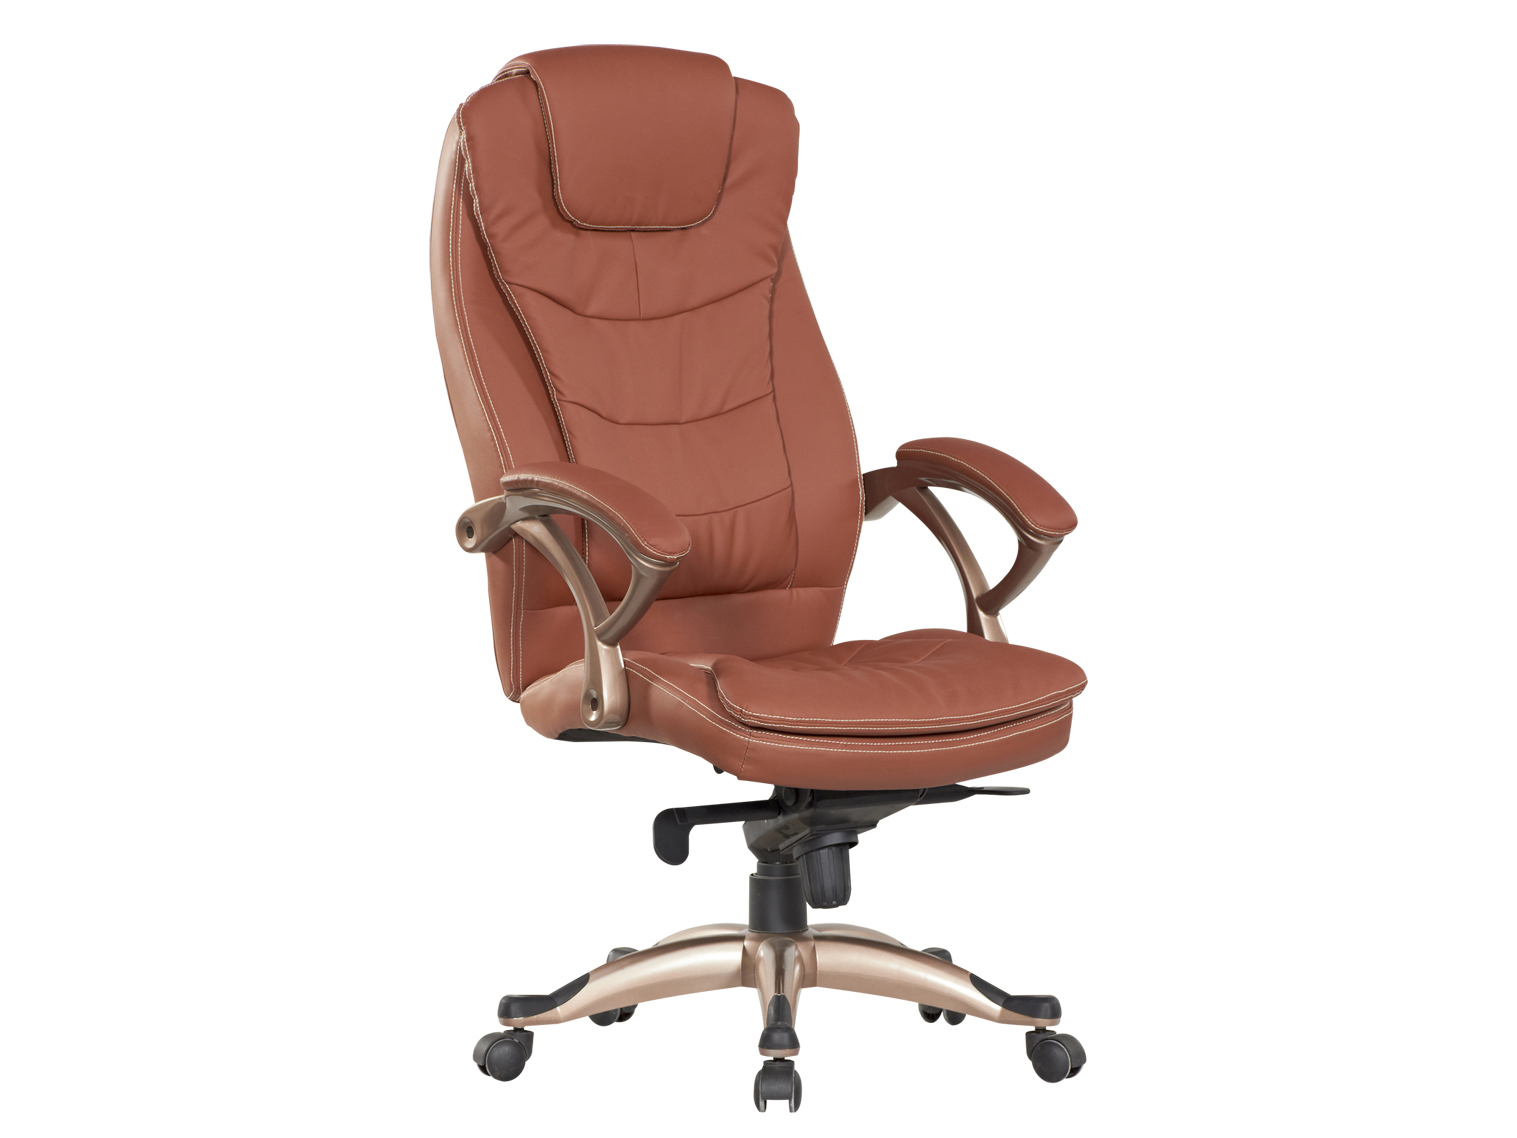 sell office chairs large dining chair pads buy classical hot selling high quality dark brown